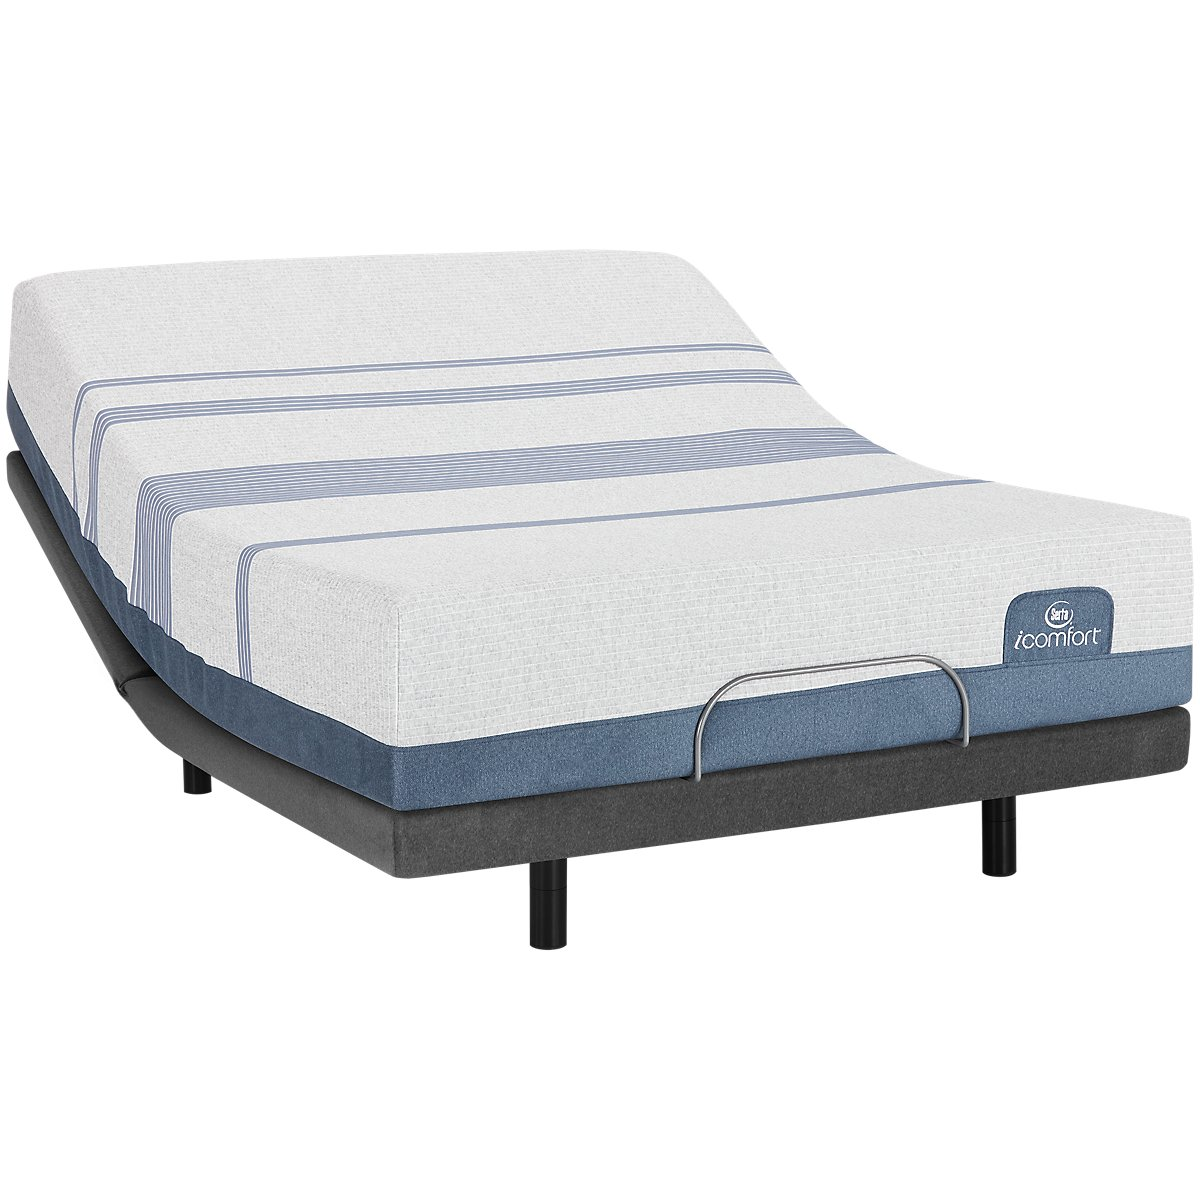 Serta iComfort Blue Max 1000 Plush Elite Adjustable Mattress Set